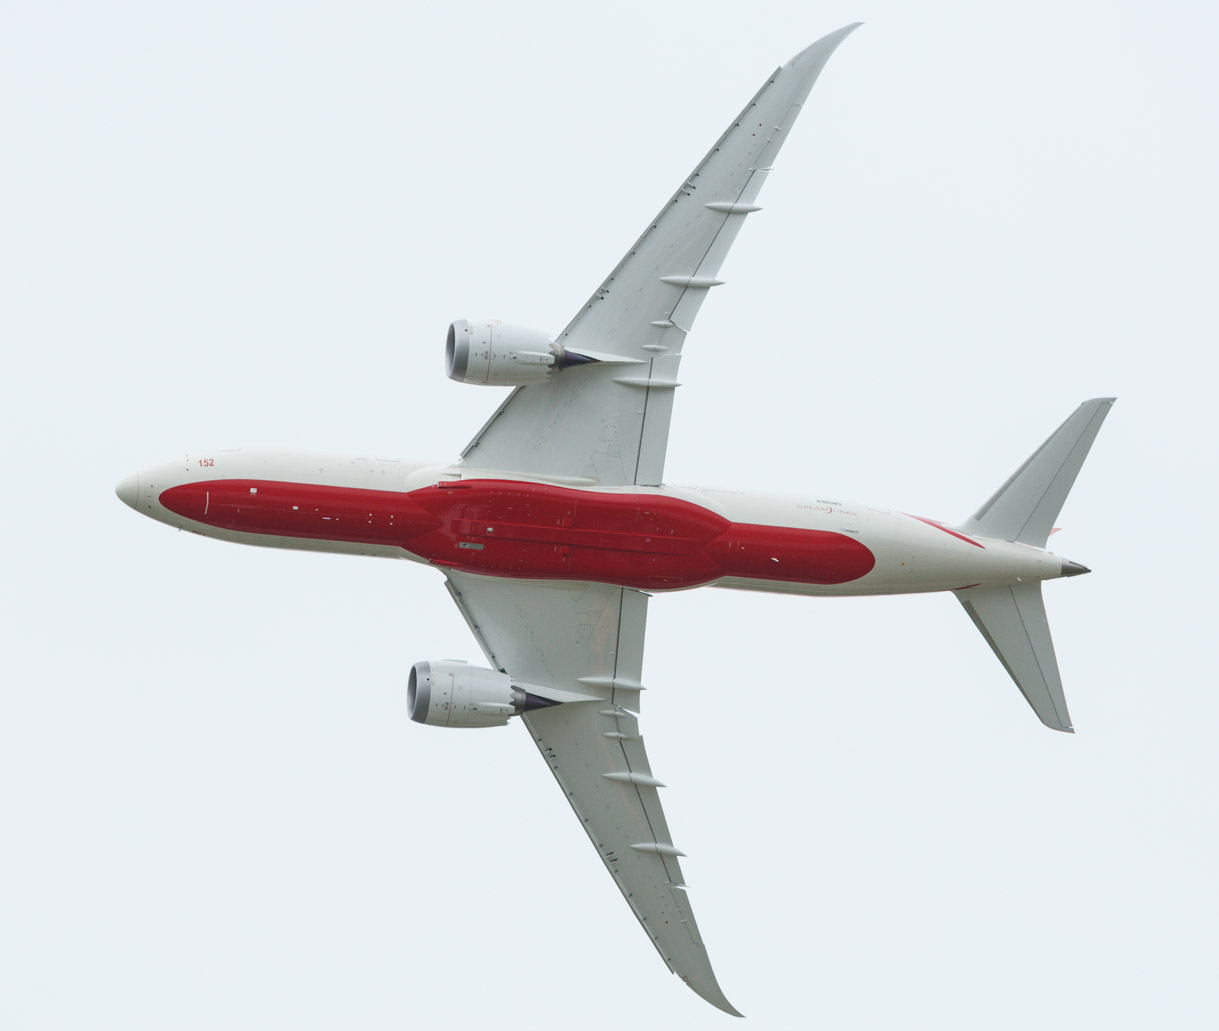 Spectators got a good view of the underside of the Boeing 787 Dreamliner as it flies over the Paris Air Show.